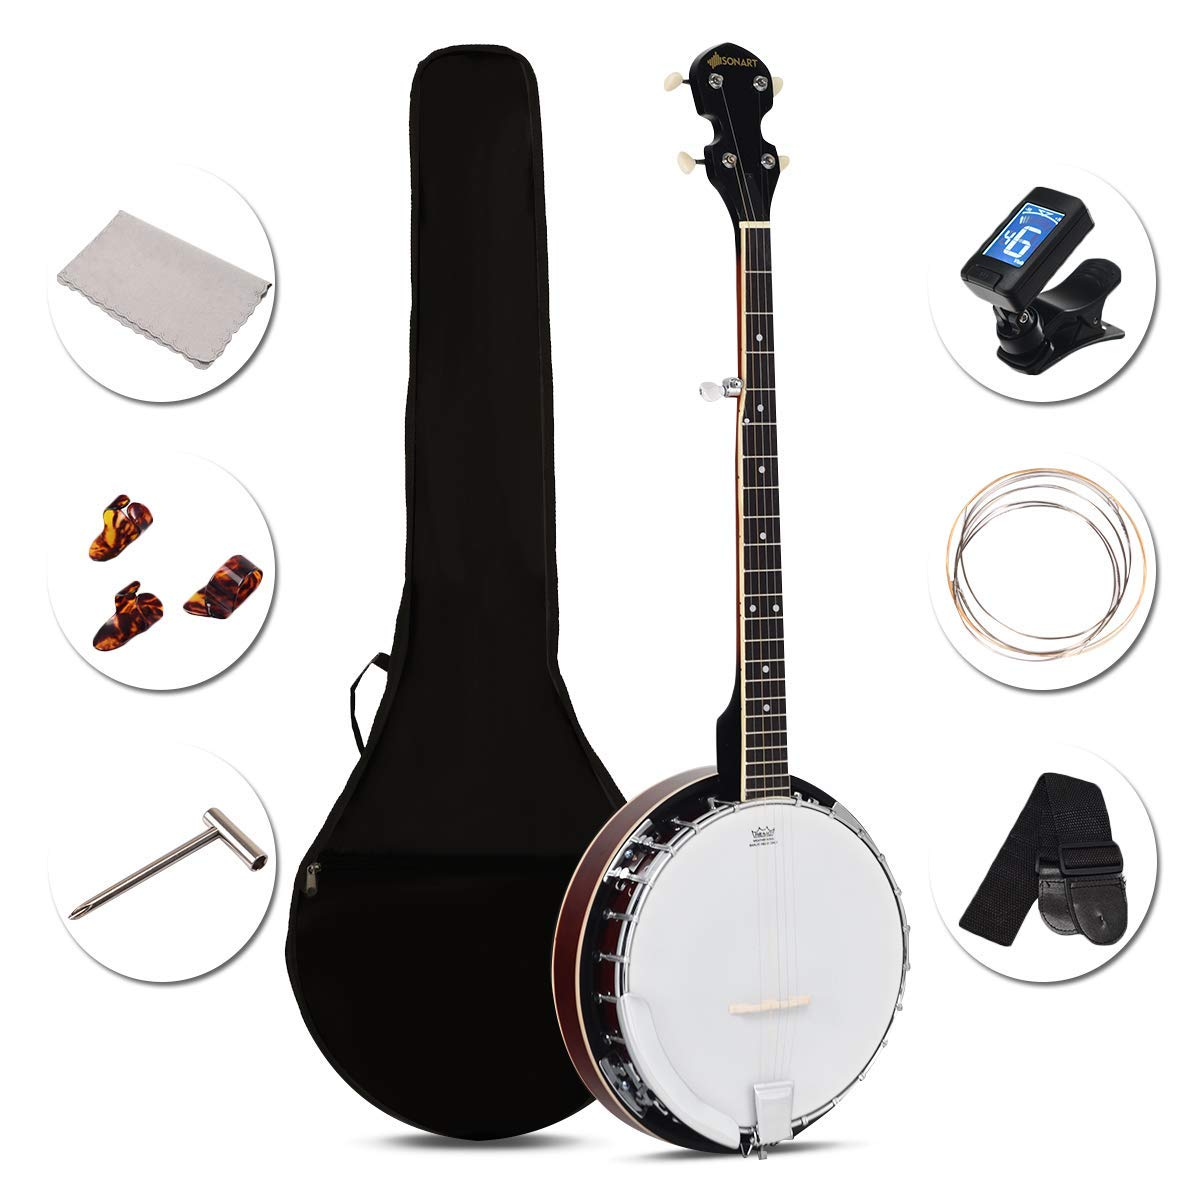 Costzon 5-String Banjo 24 Bracket with Geared 5th tuner and Mid-range  Closed Handle, Include 420D Oxford Cloth Bag, One Strap, Wiper, 3 Picks for